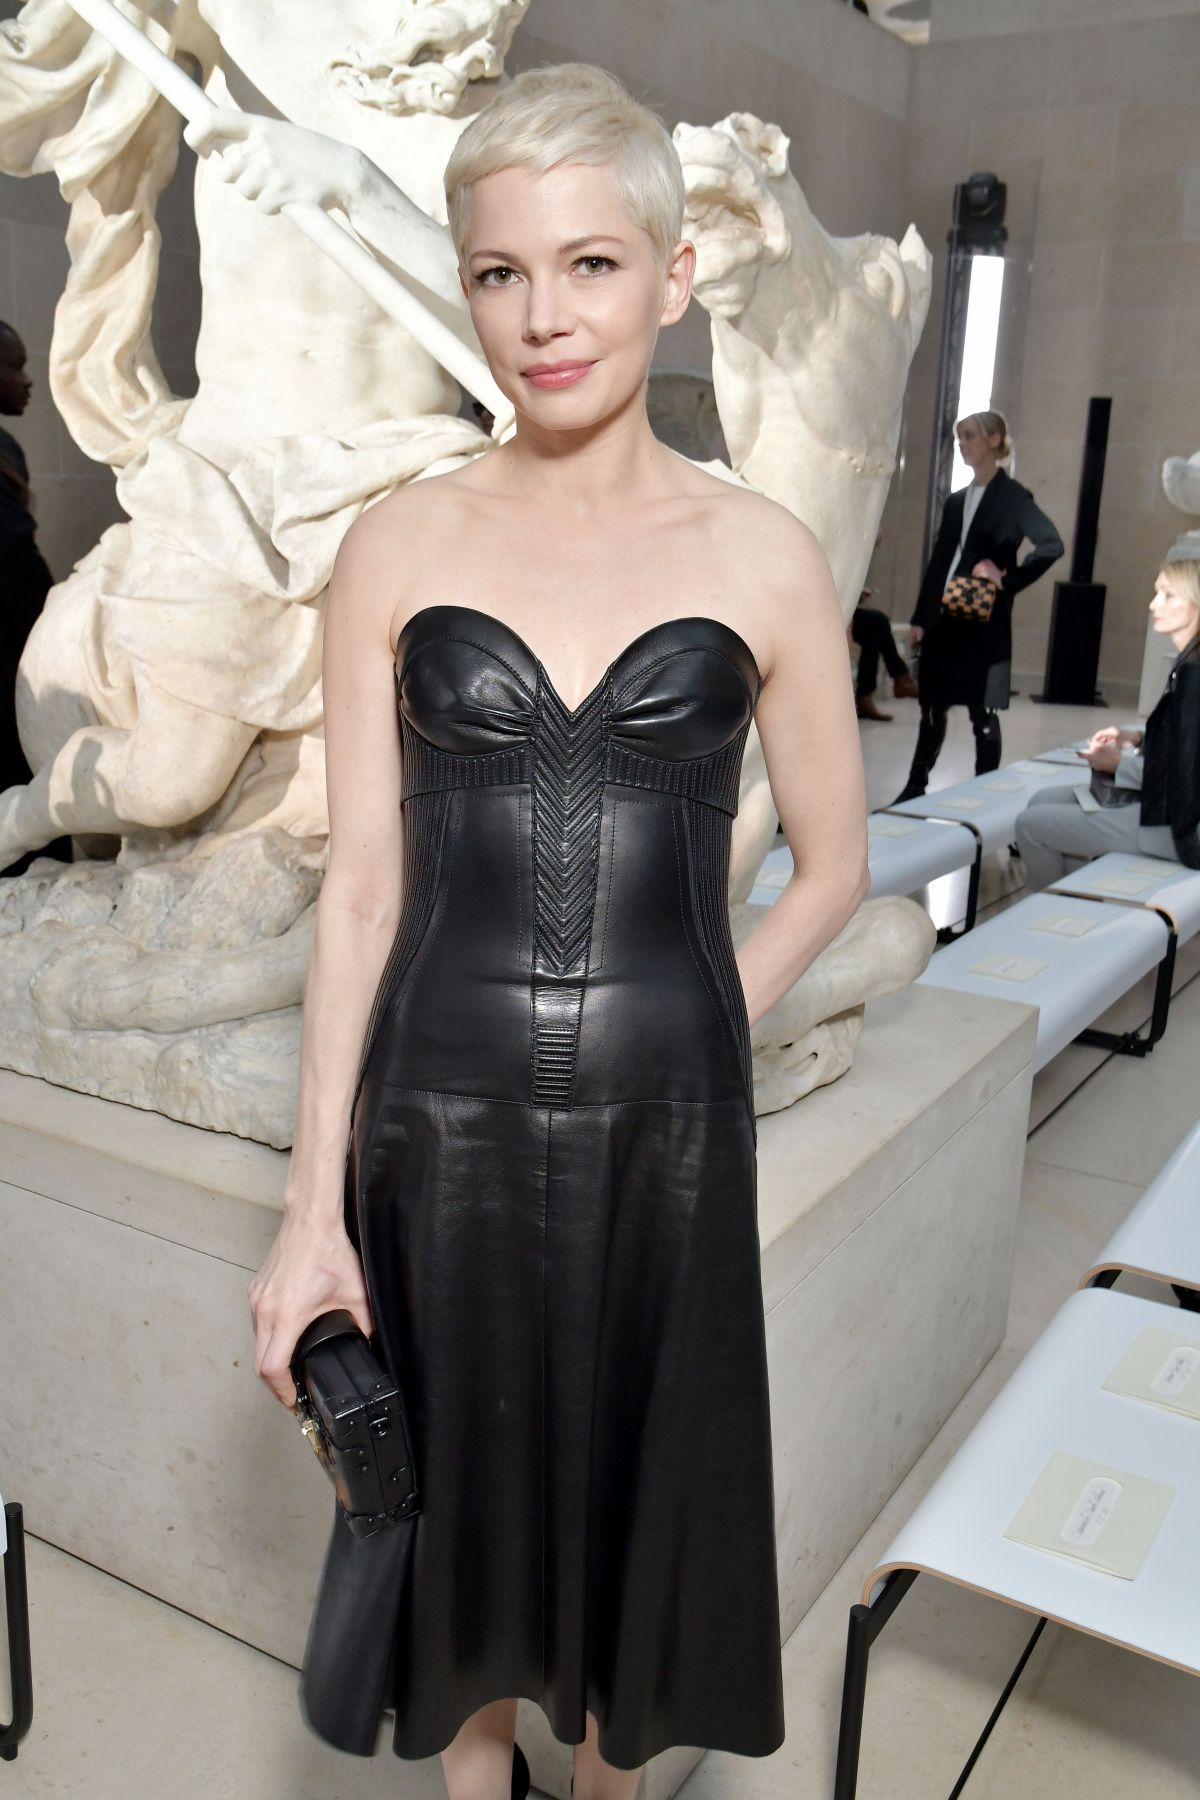 Michelle Williams Archives - HawtCelebs - HawtCelebs Michelle Williams